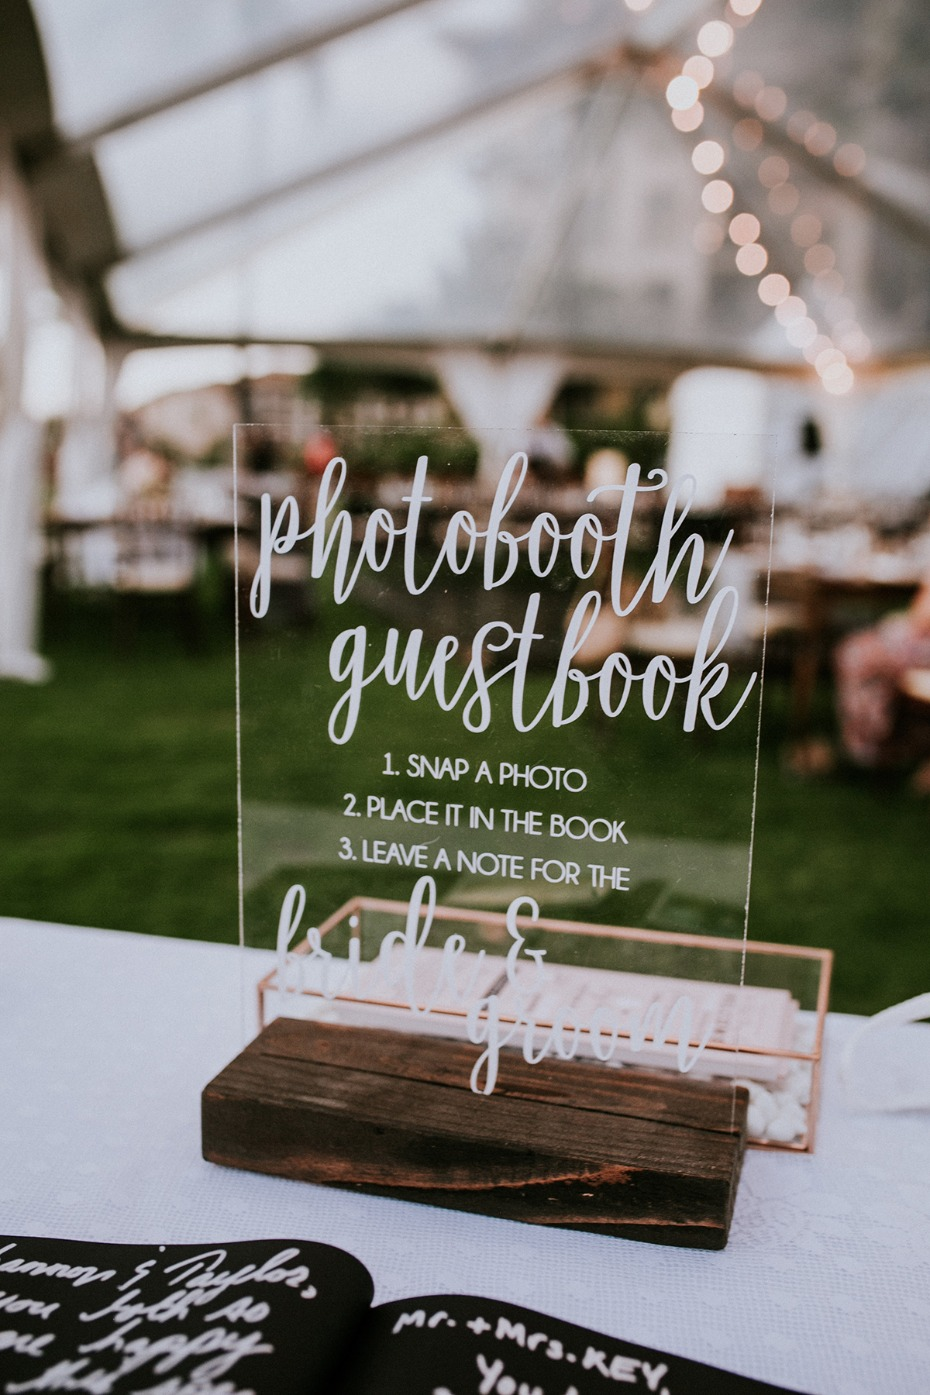 Acrylic wedding sign idea